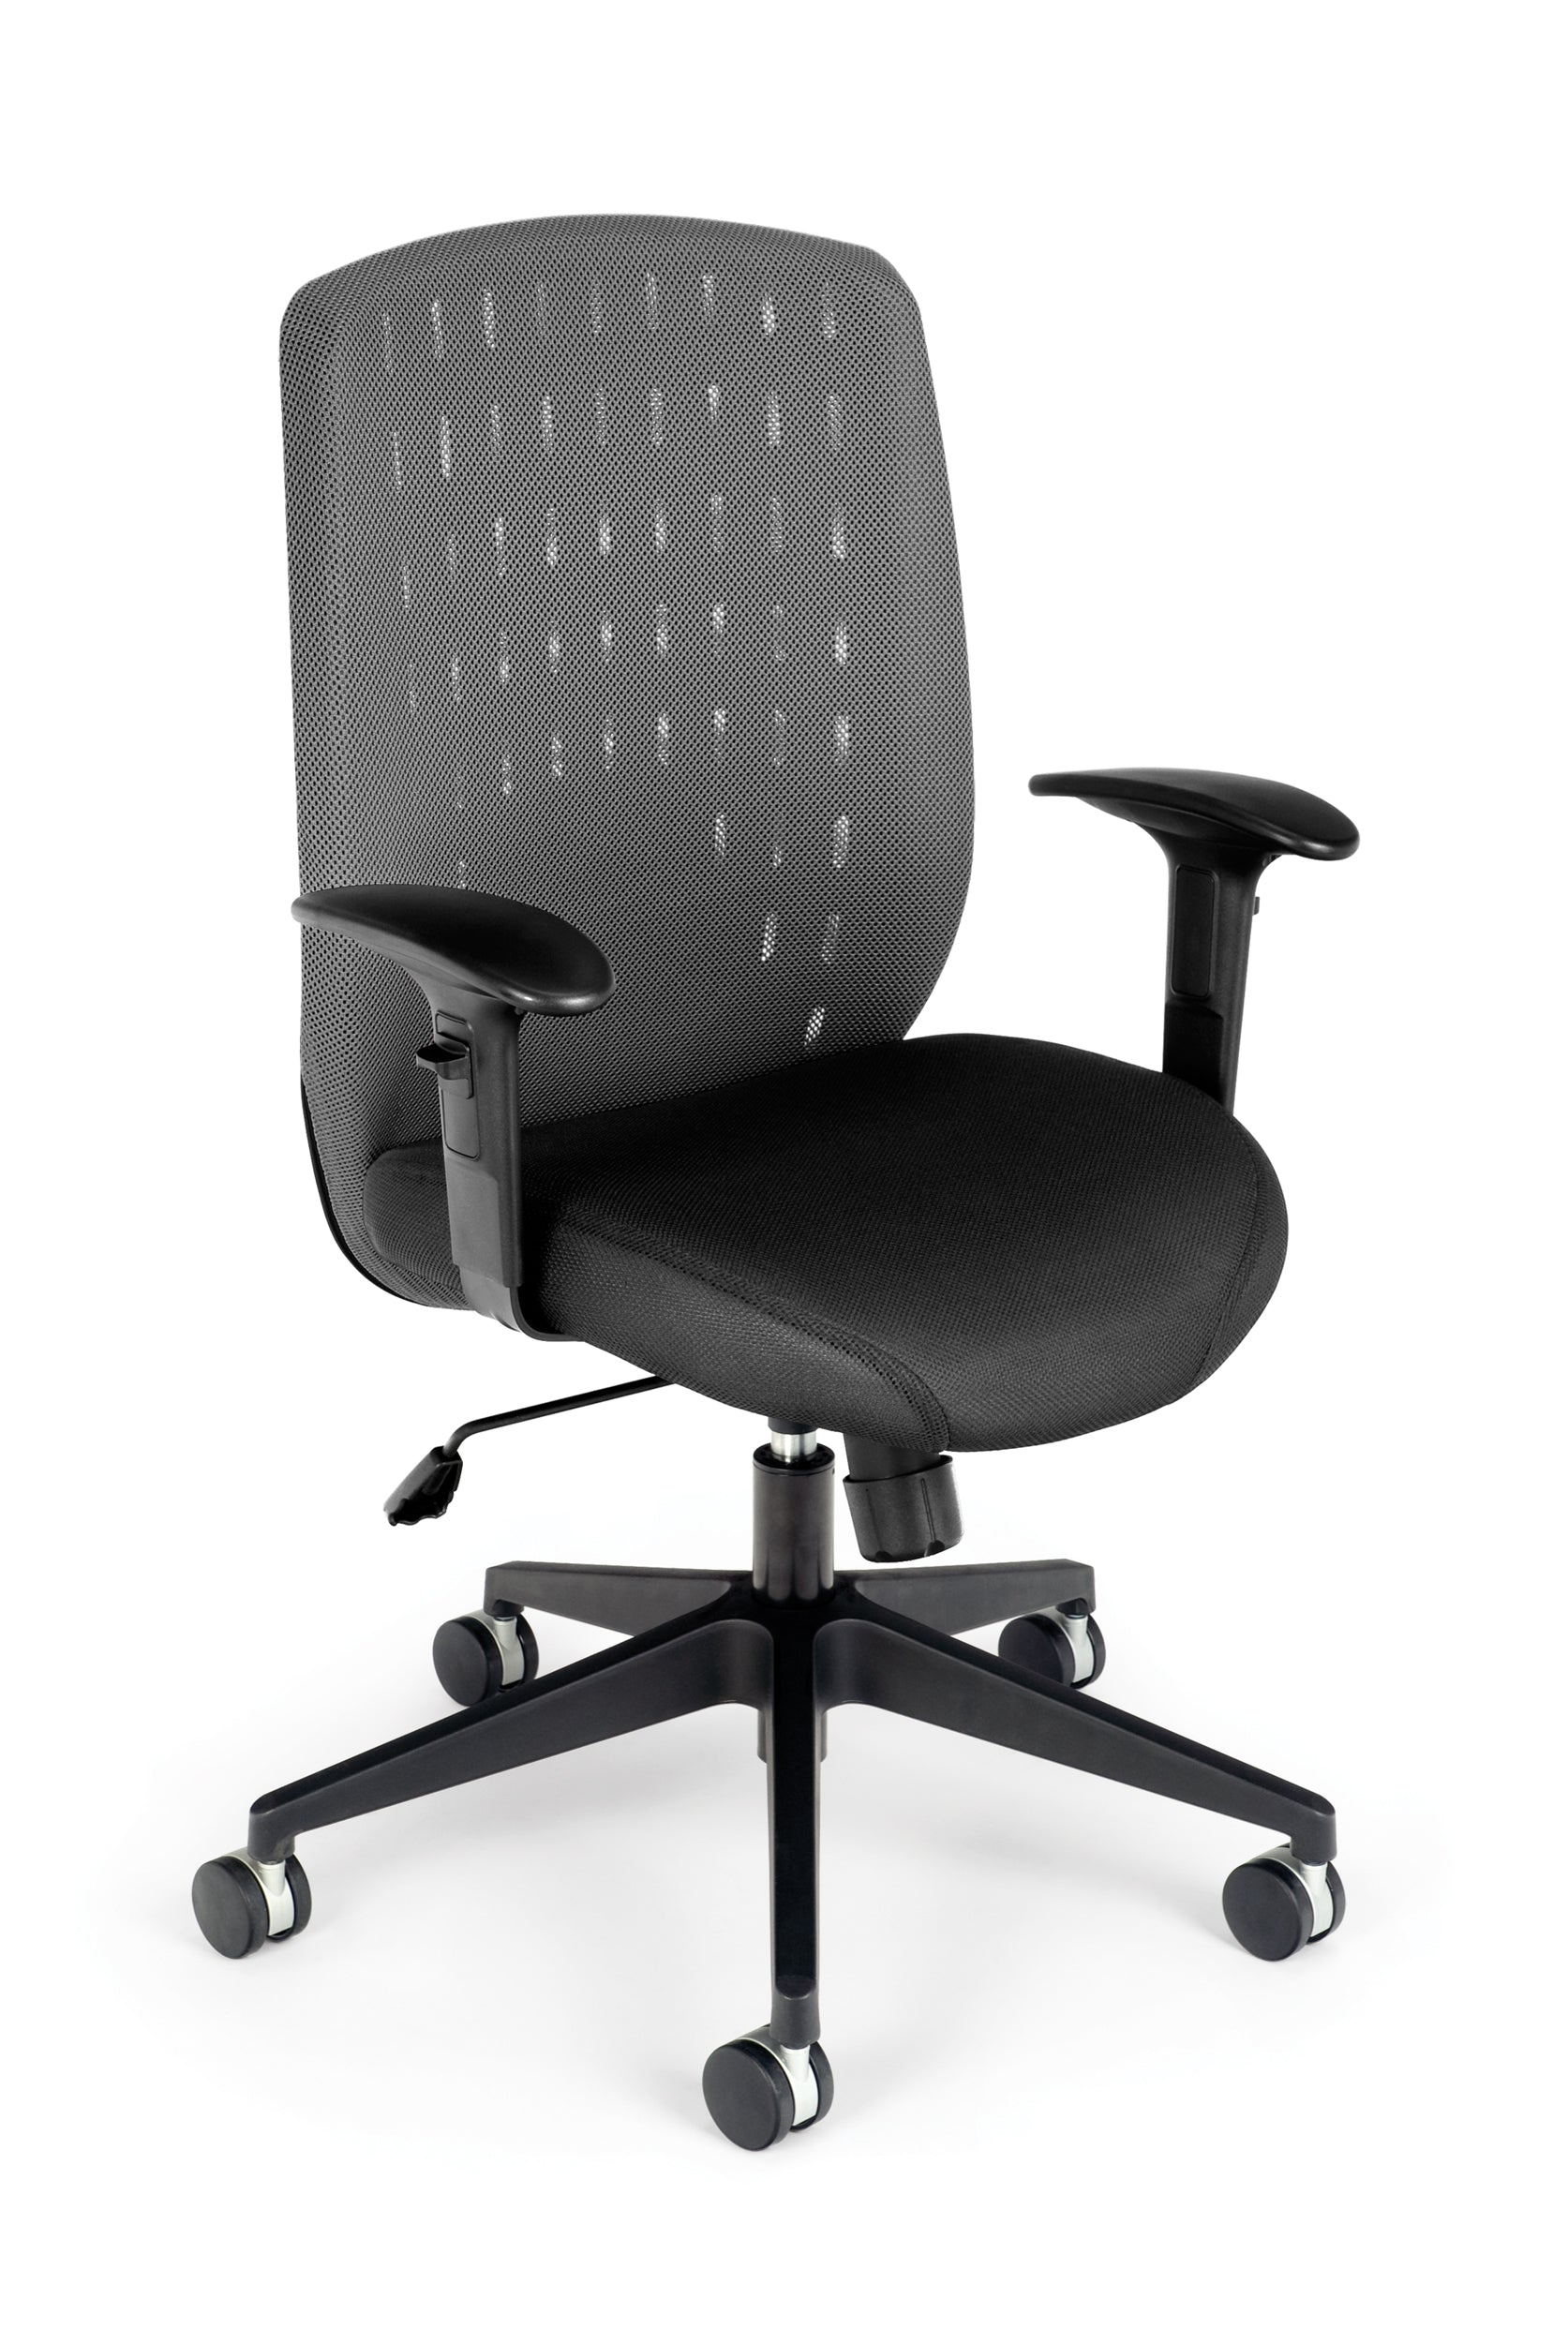 Model 654 Vision Series Executive Mesh Back Swivel Arms Office Chair